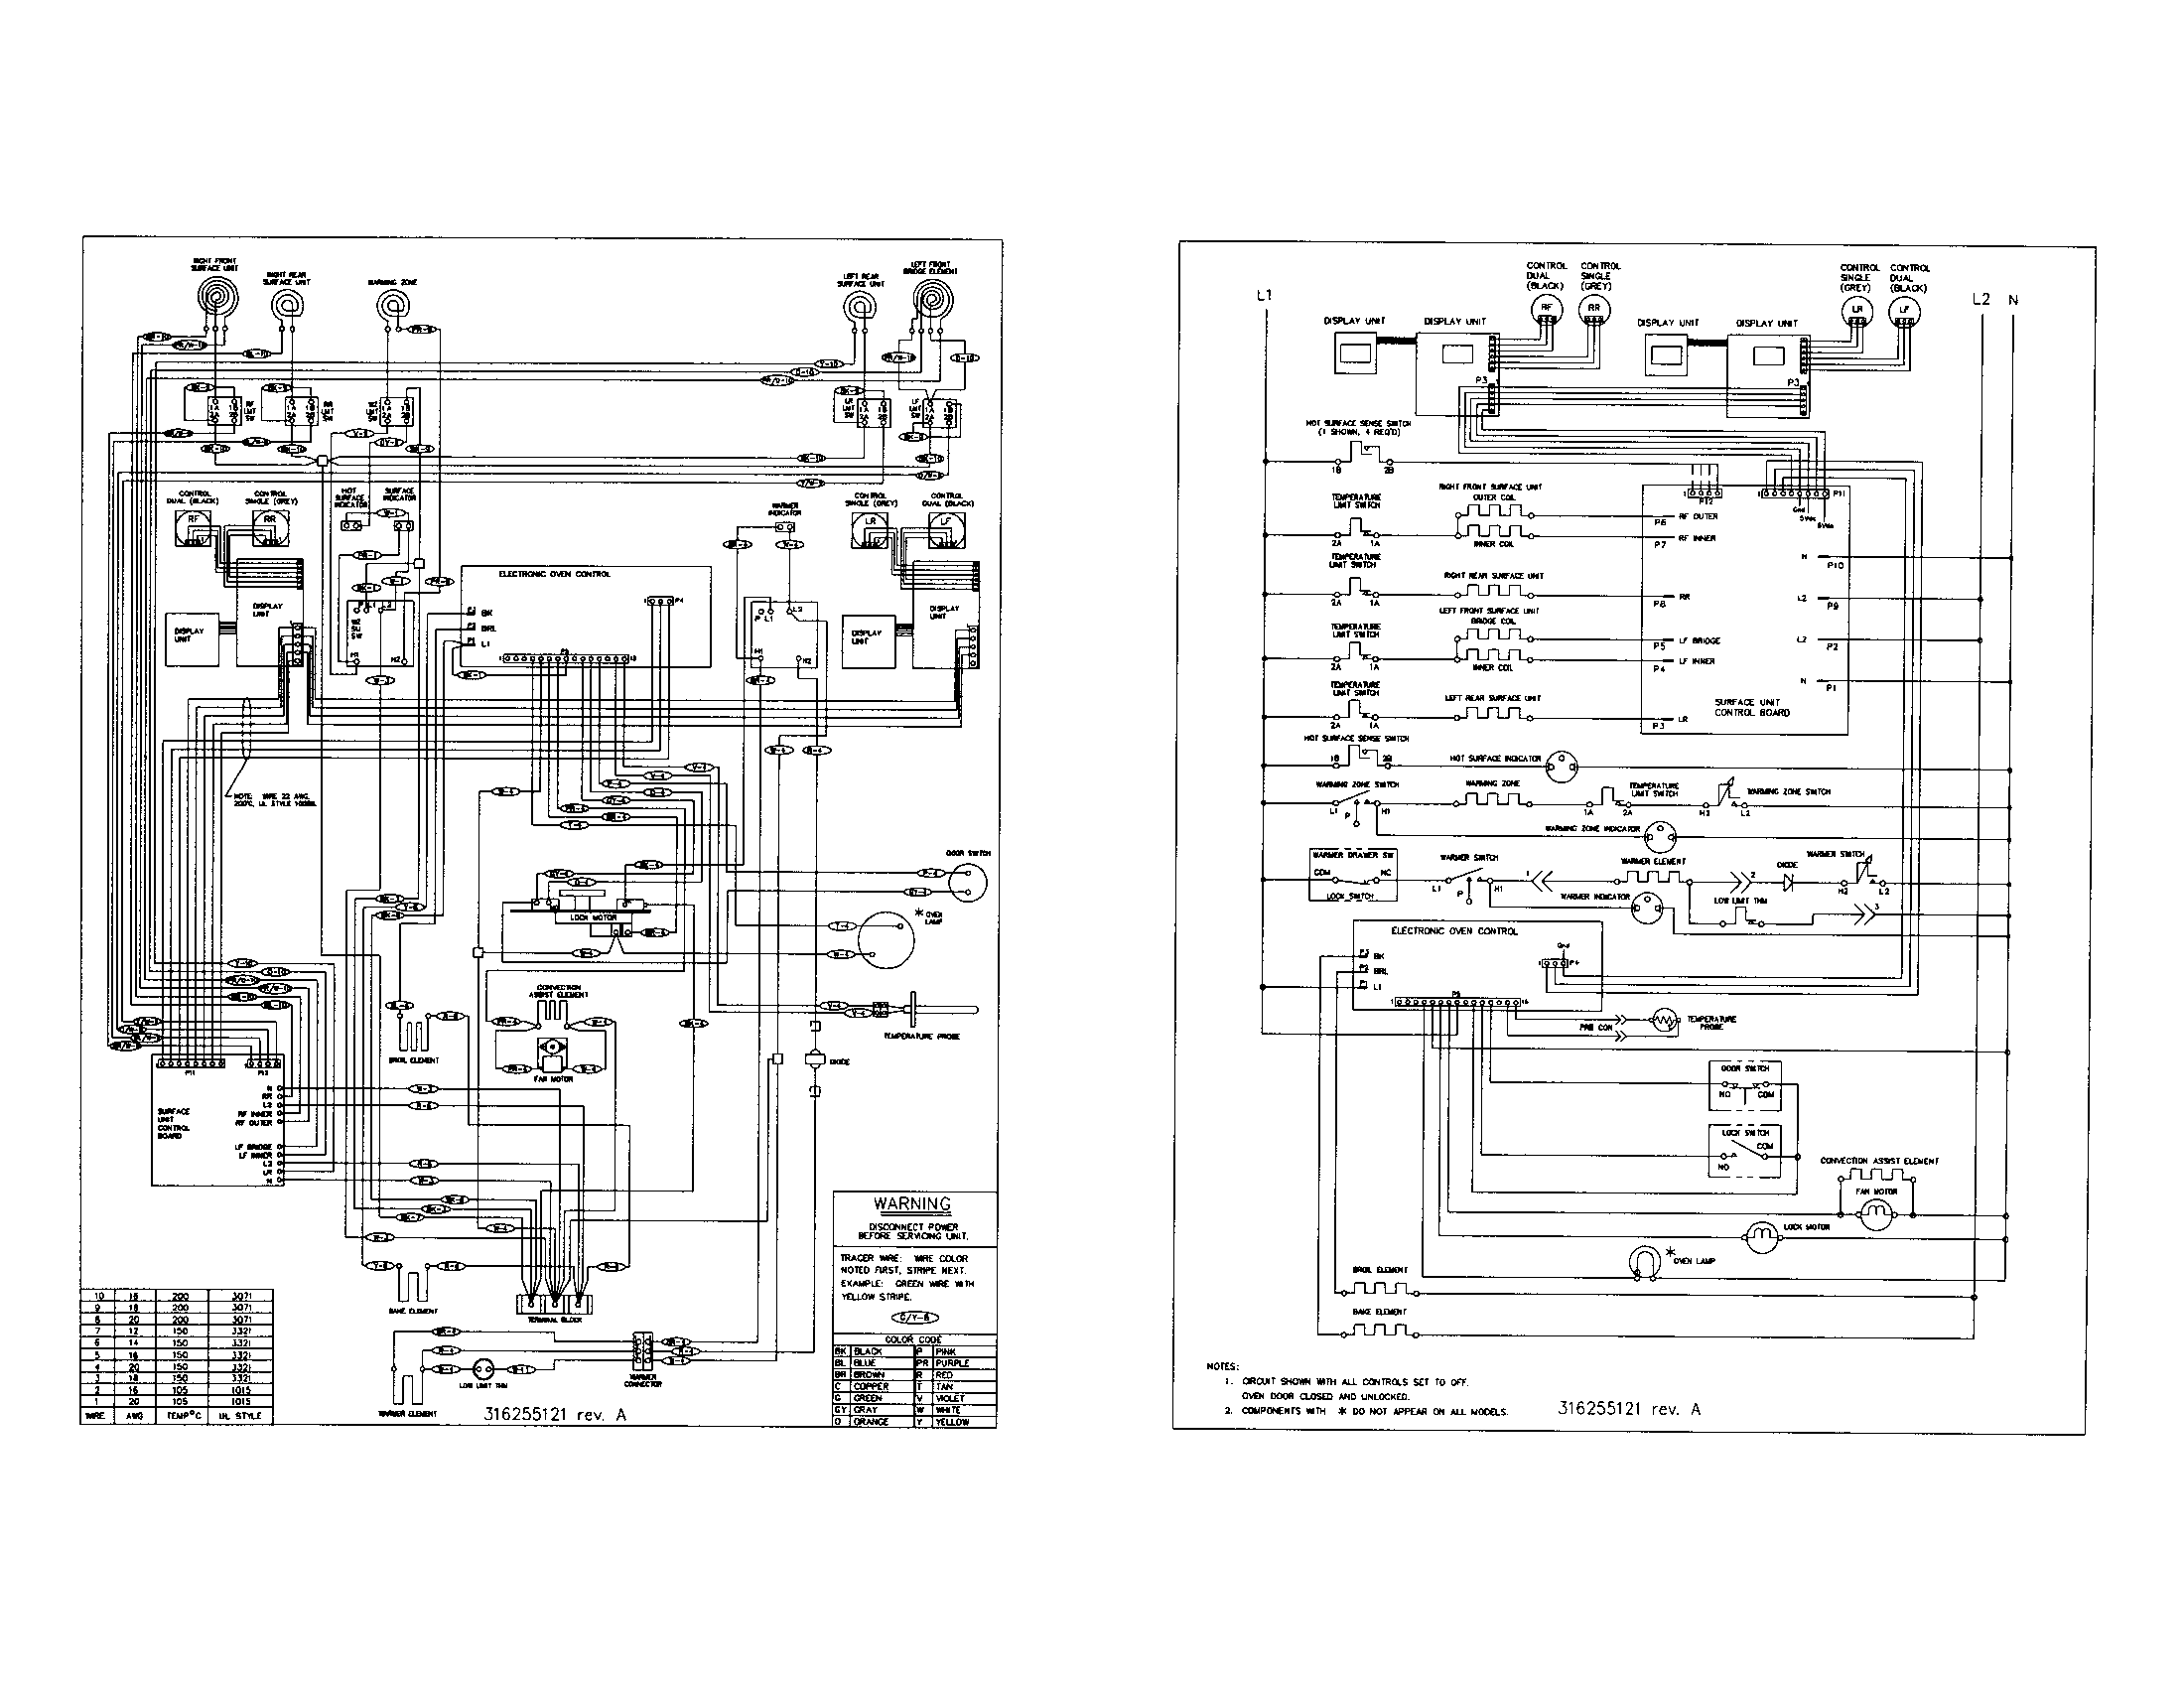 wiring diagram parts?resize\\\\\\\\\\\\\\\\\\\\\\\\\\\\\\\\\\\\\\\\\\\\\\\\\\\\\\\\\\\\\\\\\\\\\\\\\\\\\\\\\\\\\\\\\\\\\\\\\\\\\\\\\\\\\\\\\\\\\\\\\\\\\\\\\\\\\\\\\\\\\\\\\\\\\\\\\\\\\\\\\\\\\\\\\\\\\\\\\\\\\\\\\\\\\\\\\\\\\\\\\\\\\\\=840%2C648 replacing a mercury thermostat no letters the odd little happy on lr27935 wiring diagram at bayanpartner.co